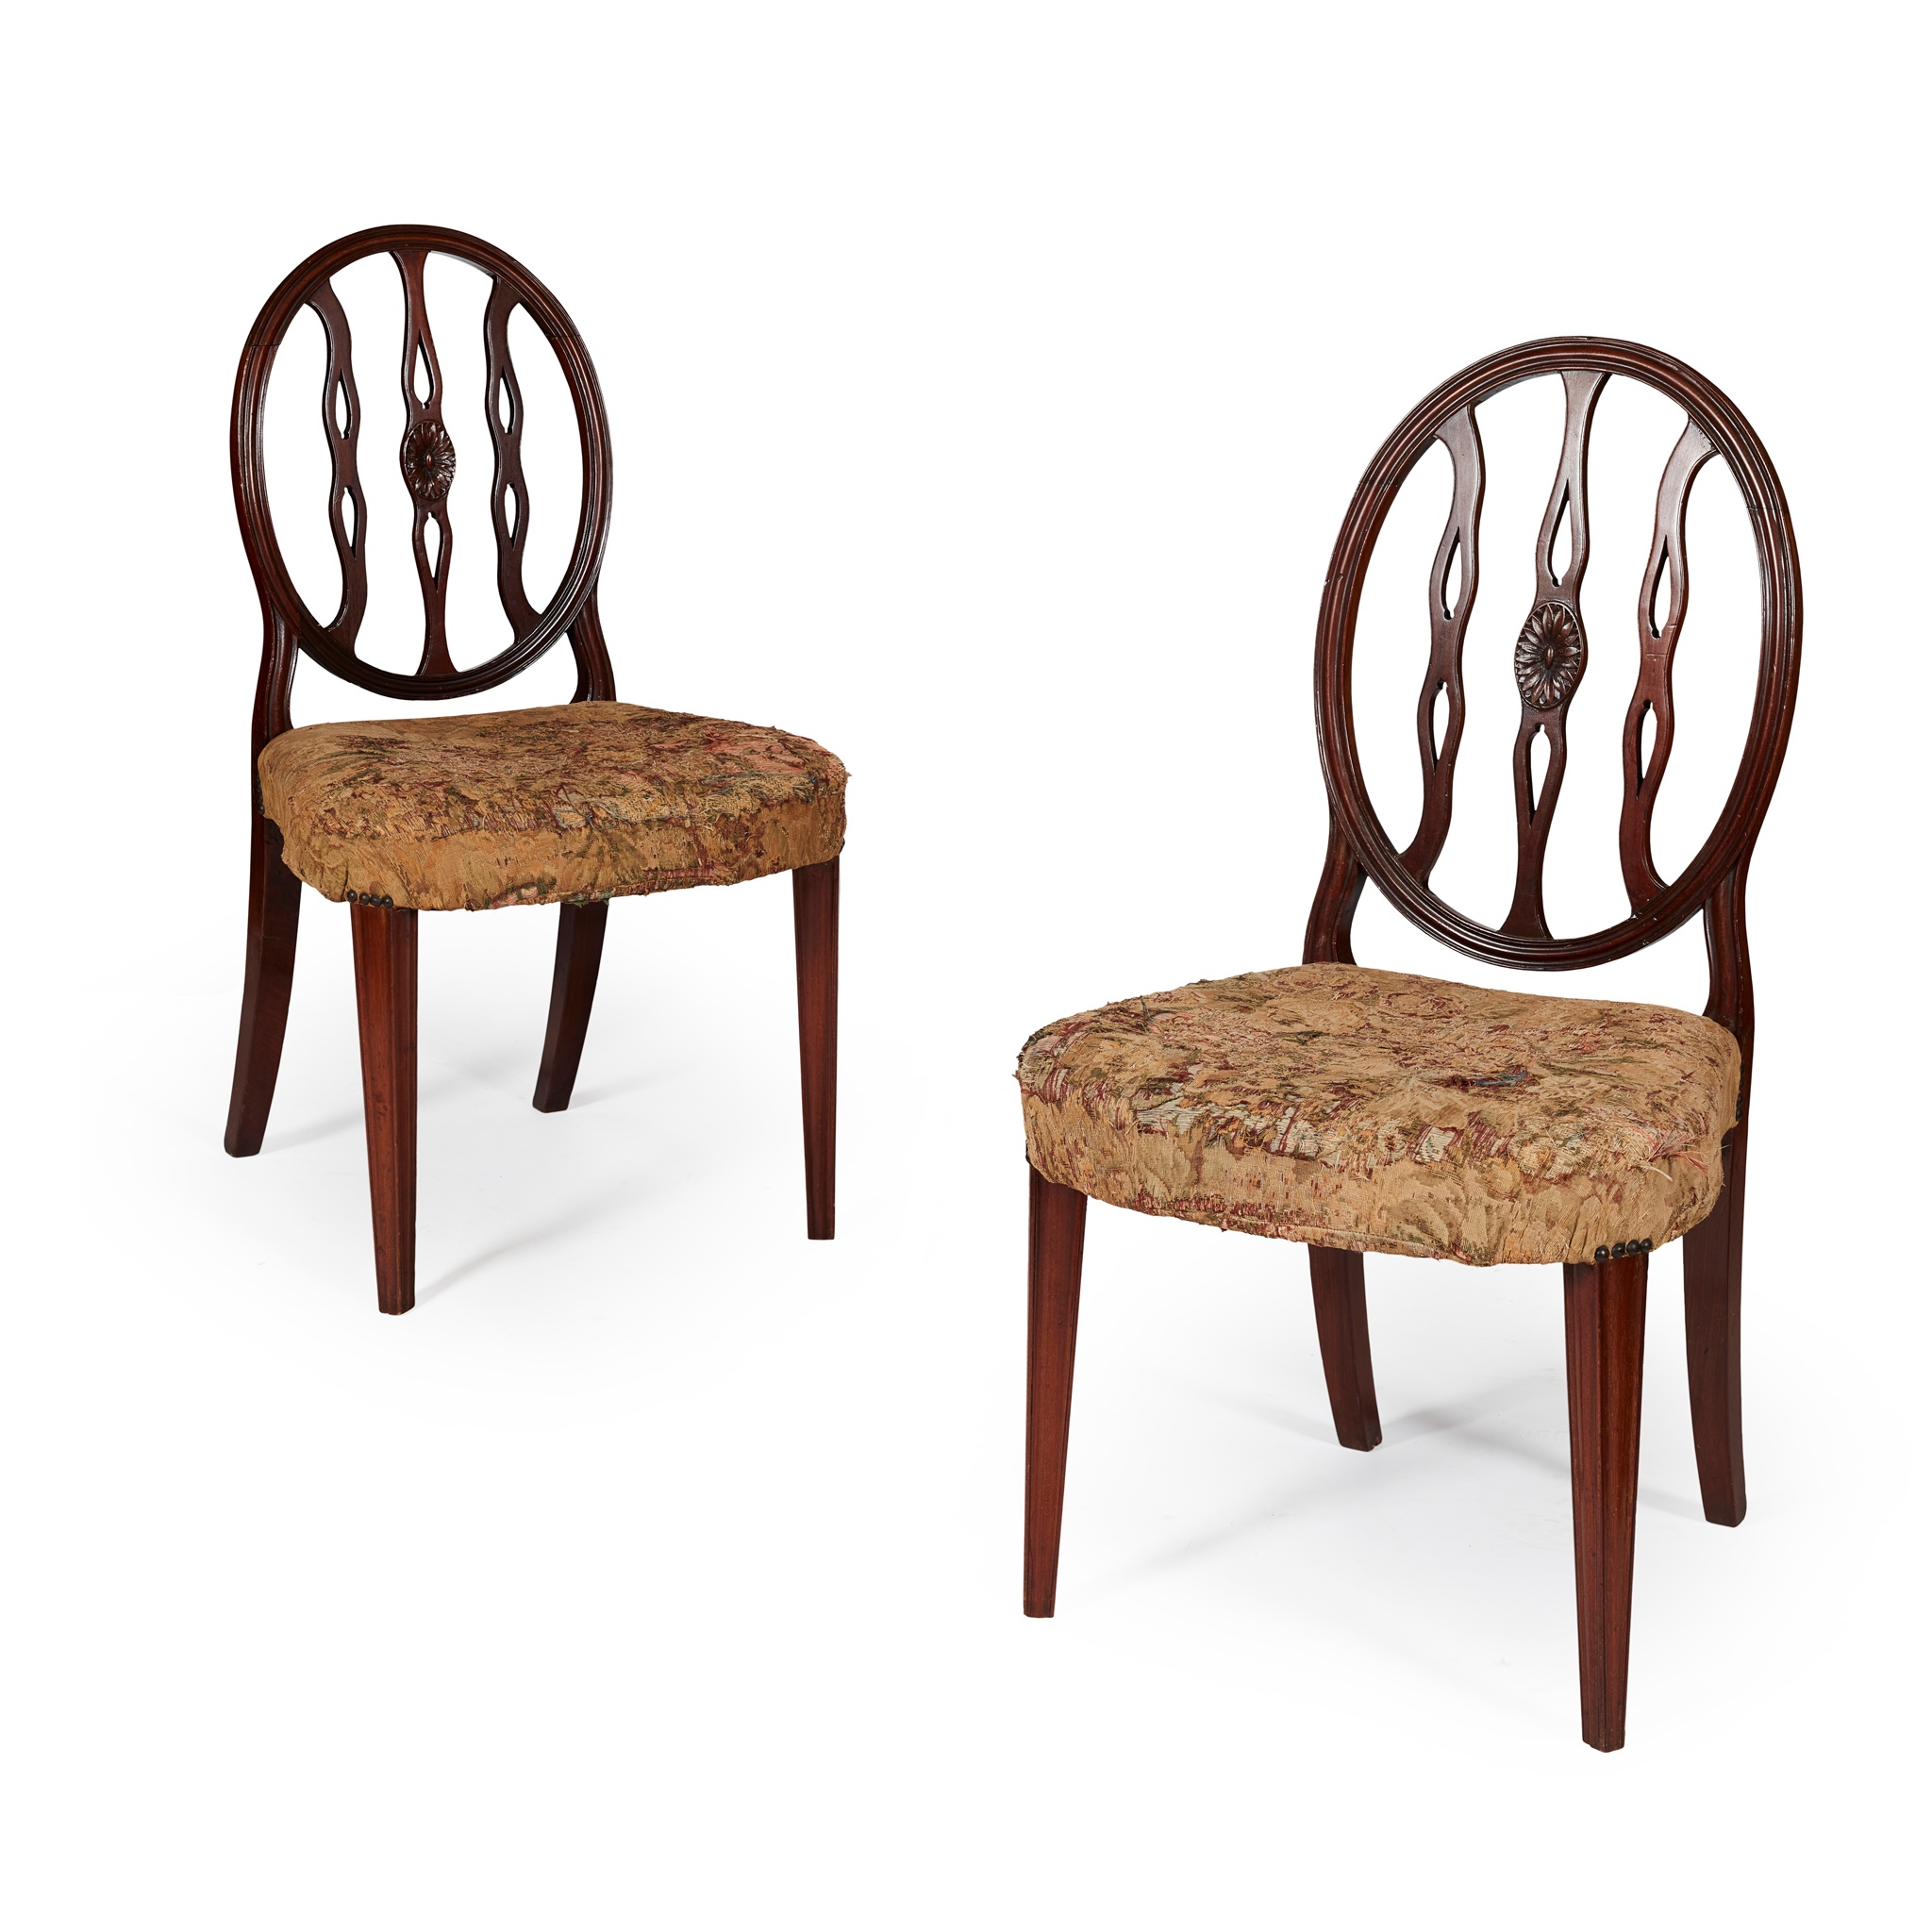 PAIR OF GEORGE III STAINED BEECH AND MAHOGANY SIDE CHAIRS LATE 18TH CENTURY